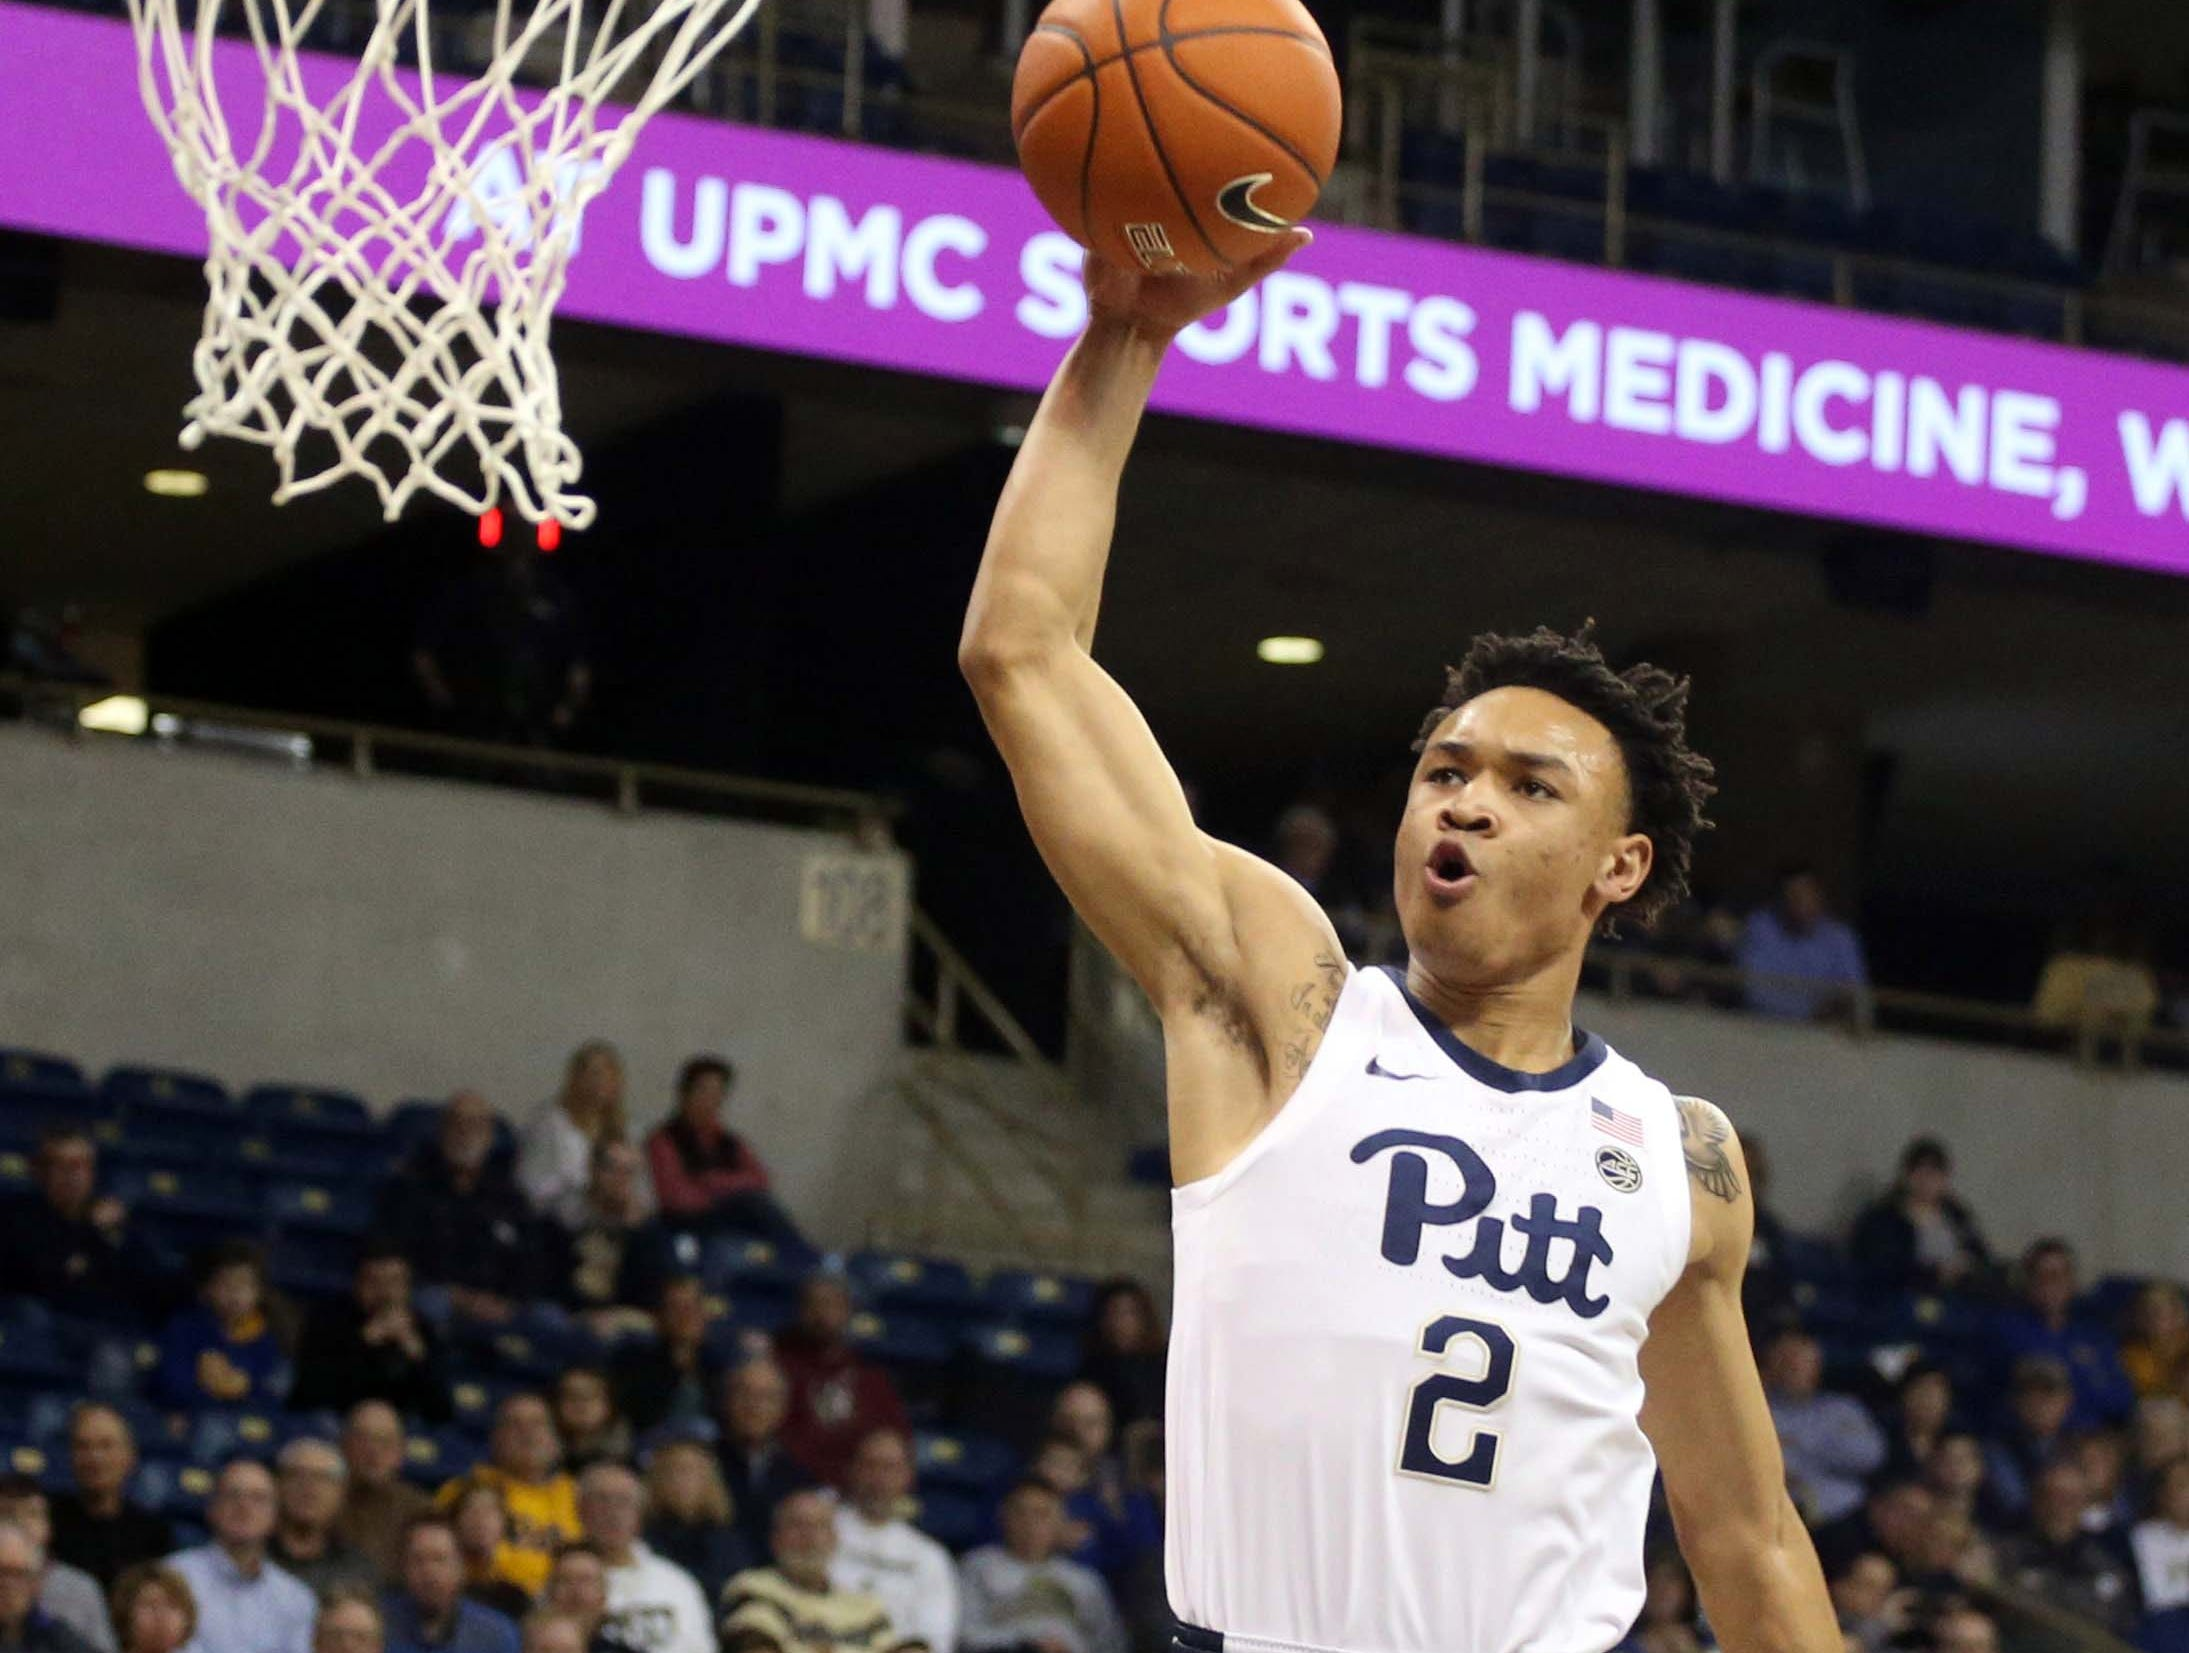 Jan 14, 2019; Pittsburgh, PA, USA; Pittsburgh Panthers guard Trey McGowens (2) attempts a dunk against the Florida State Seminoles during the first half at the Petersen Events Center. Mandatory Credit: Charles LeClaire-USA TODAY Sports